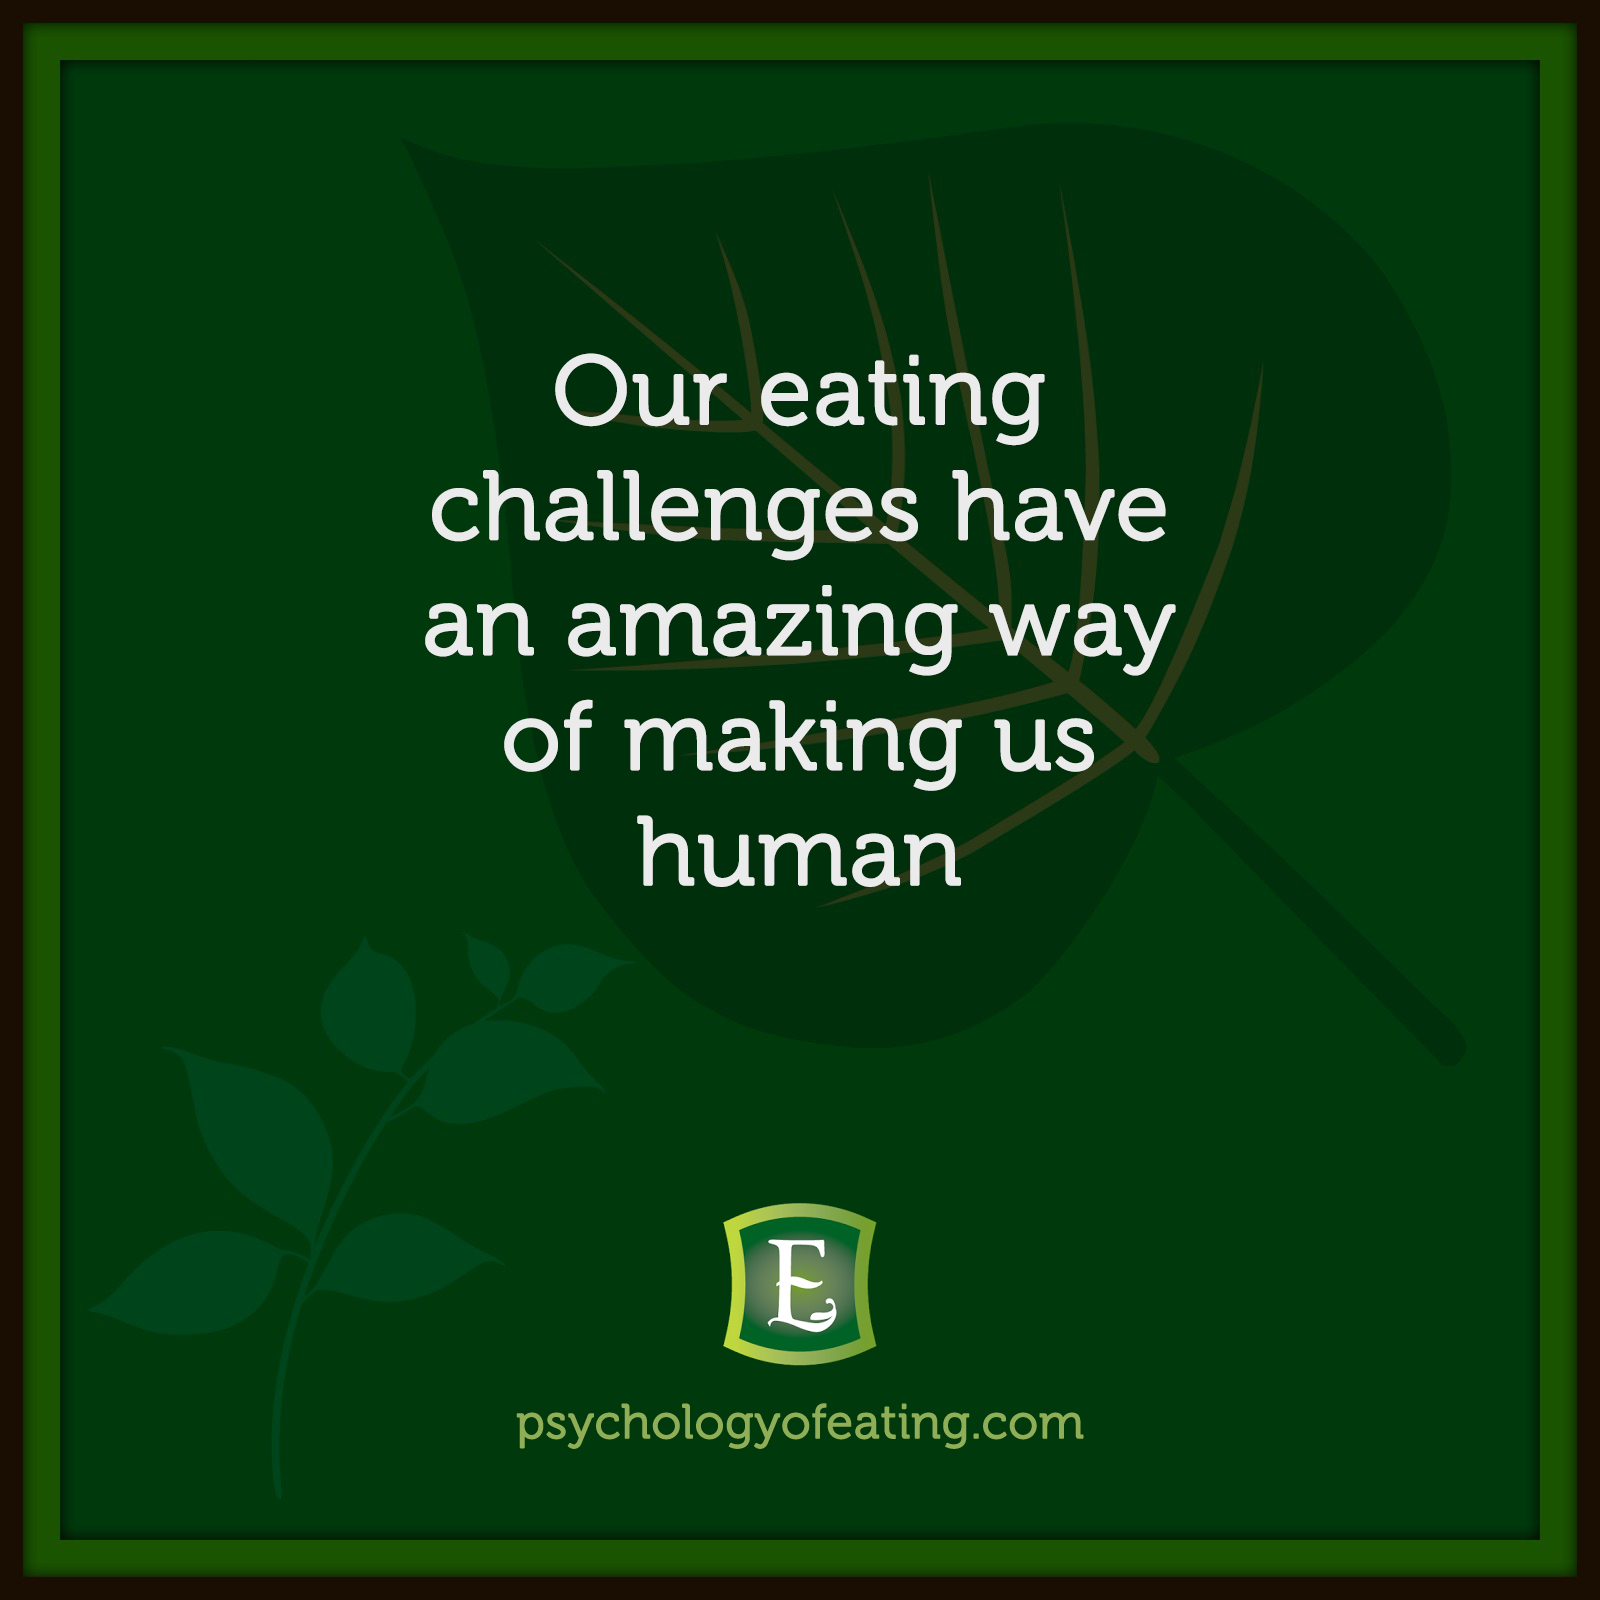 Our eating challenges have an amazing way of making us human #health #nutrition #eatingpsychology #IPE